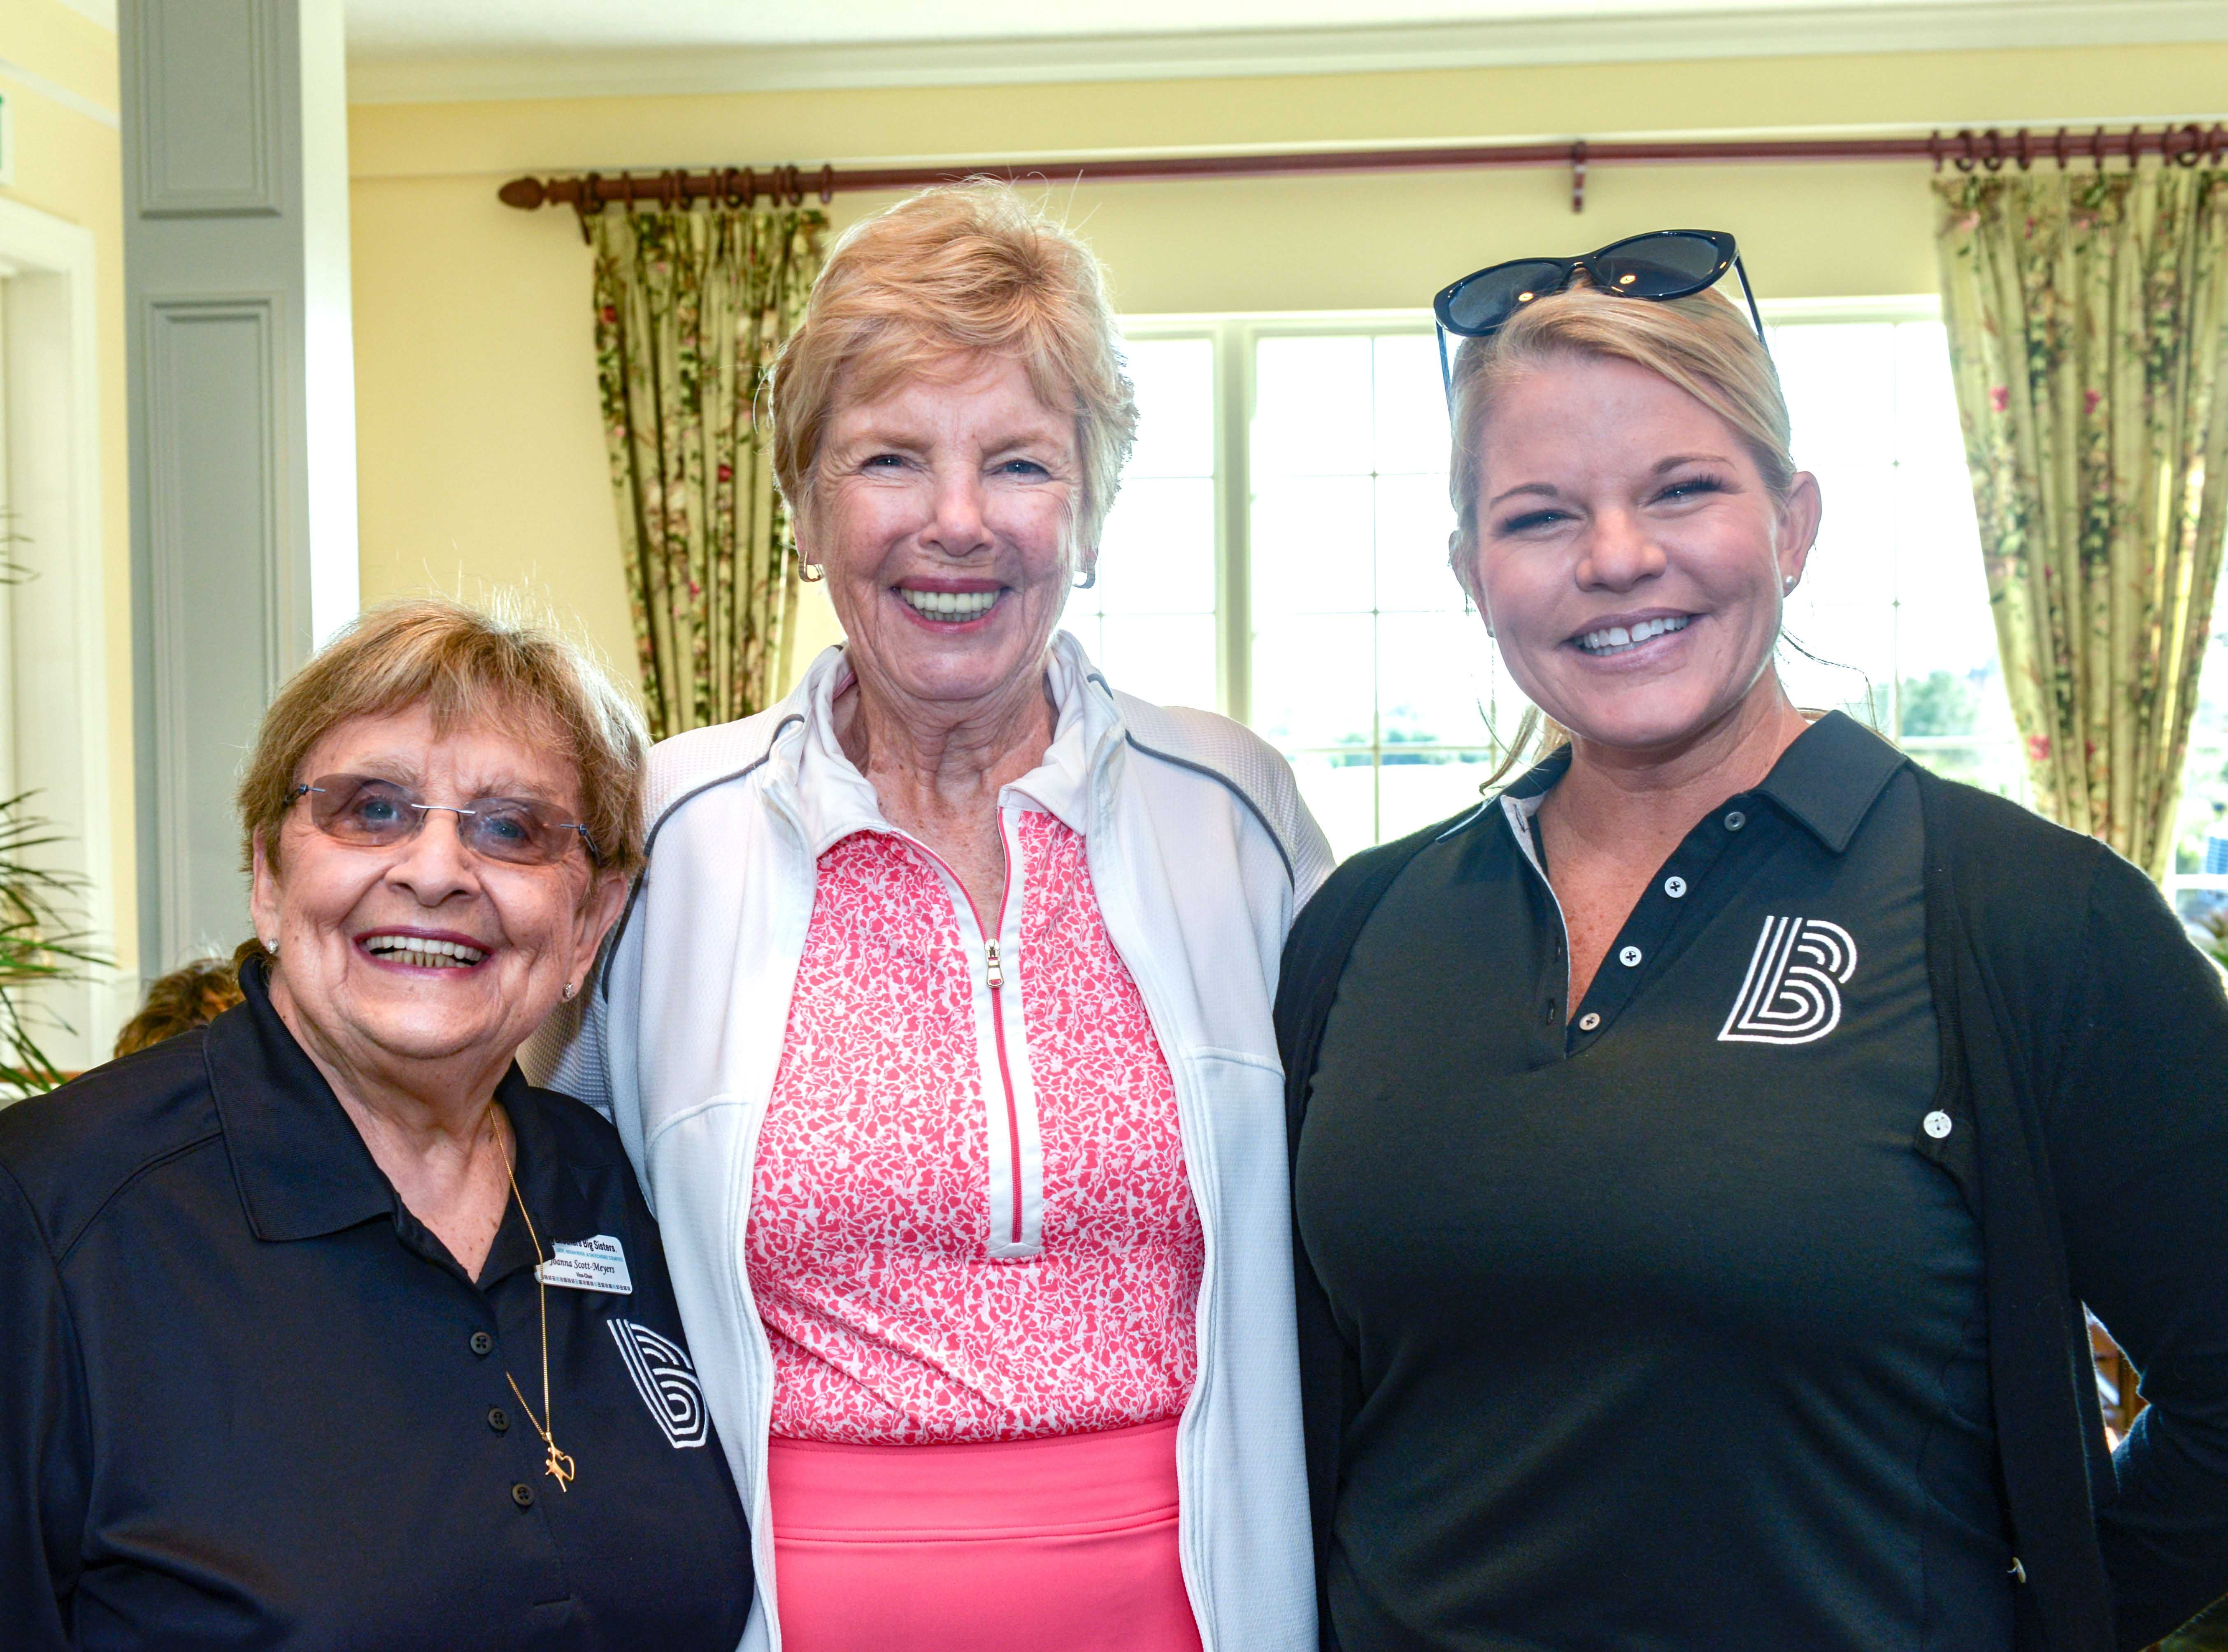 Board Vice Chair Joanna Scott Meyers, left, Sponsor Pat Binglemann and CEO Stacey Watson-Mesley at Hawk's Nest Golf Club for the Big Brothers Big Sisters Golf Tournament on Feb. 4.